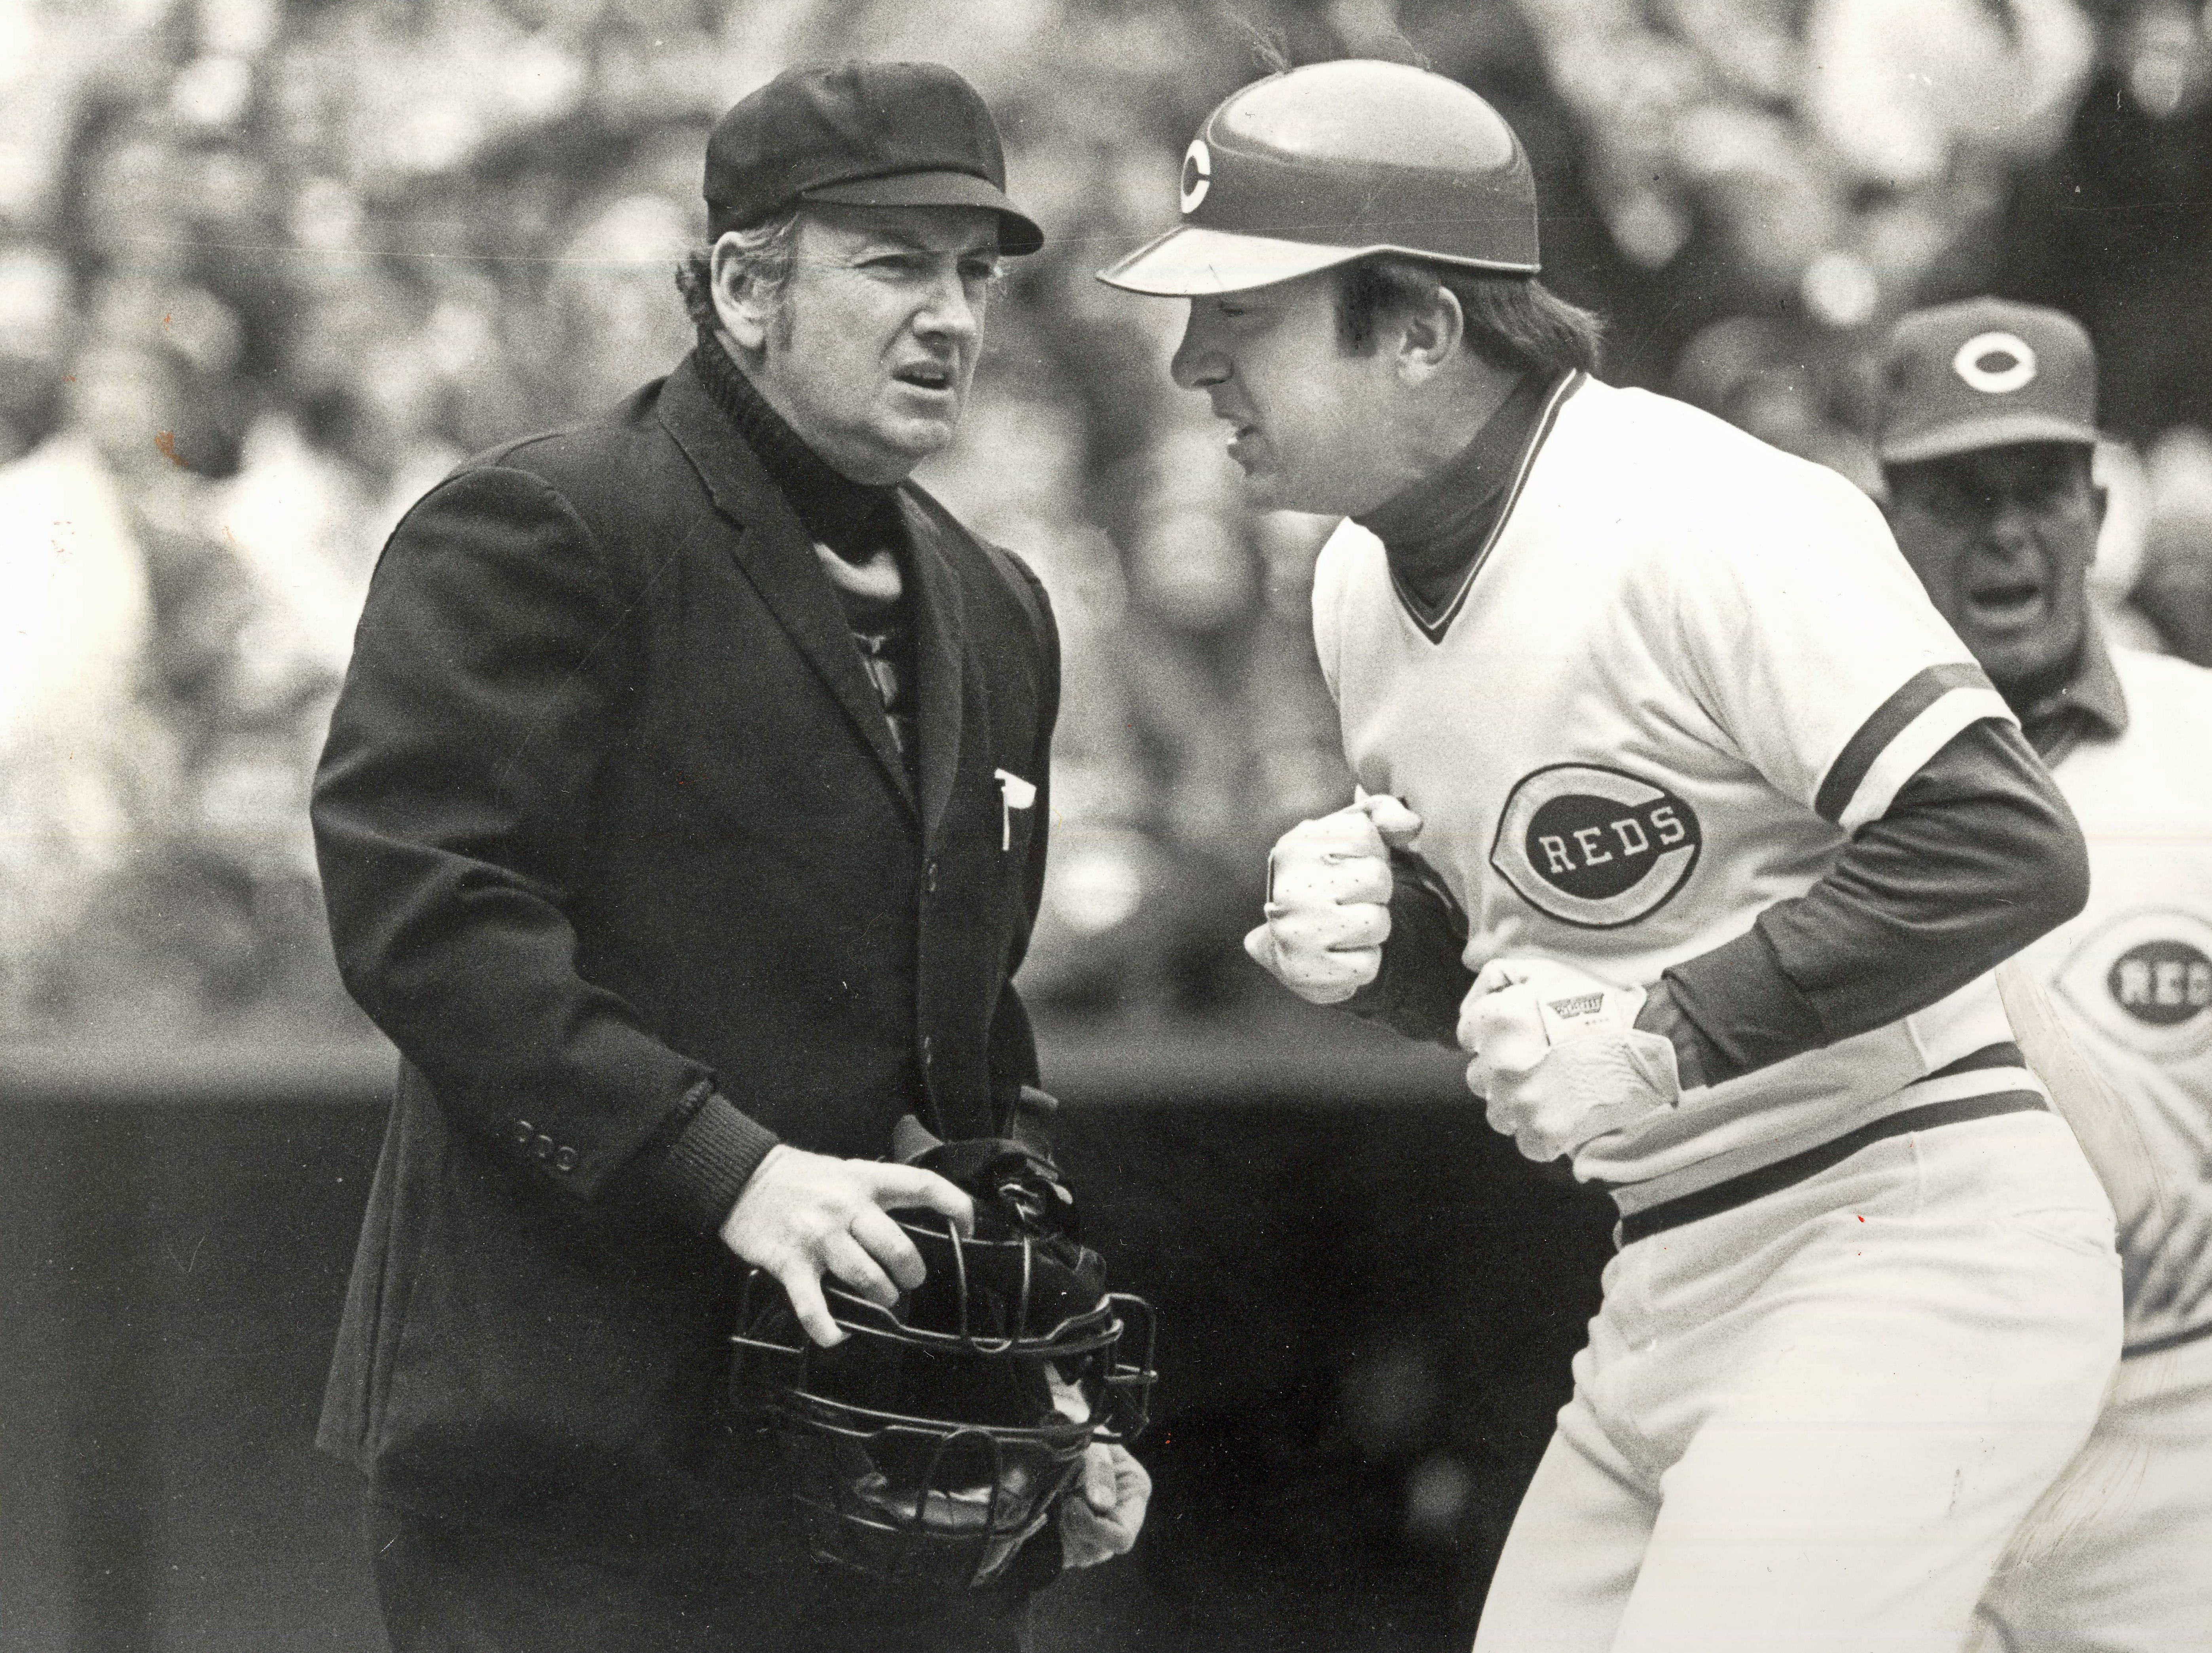 """APRIL 15, 1979: Reds' catcher Johnny Bench takes exception to the """"sweep tag"""" call by umpire Roger Grooms, a member of the Queen City Umpires' Association, in last Saturday's 4-2 loss to the Giants. The Enquirer/Natalie Fobes Scanned 6/21/2018"""